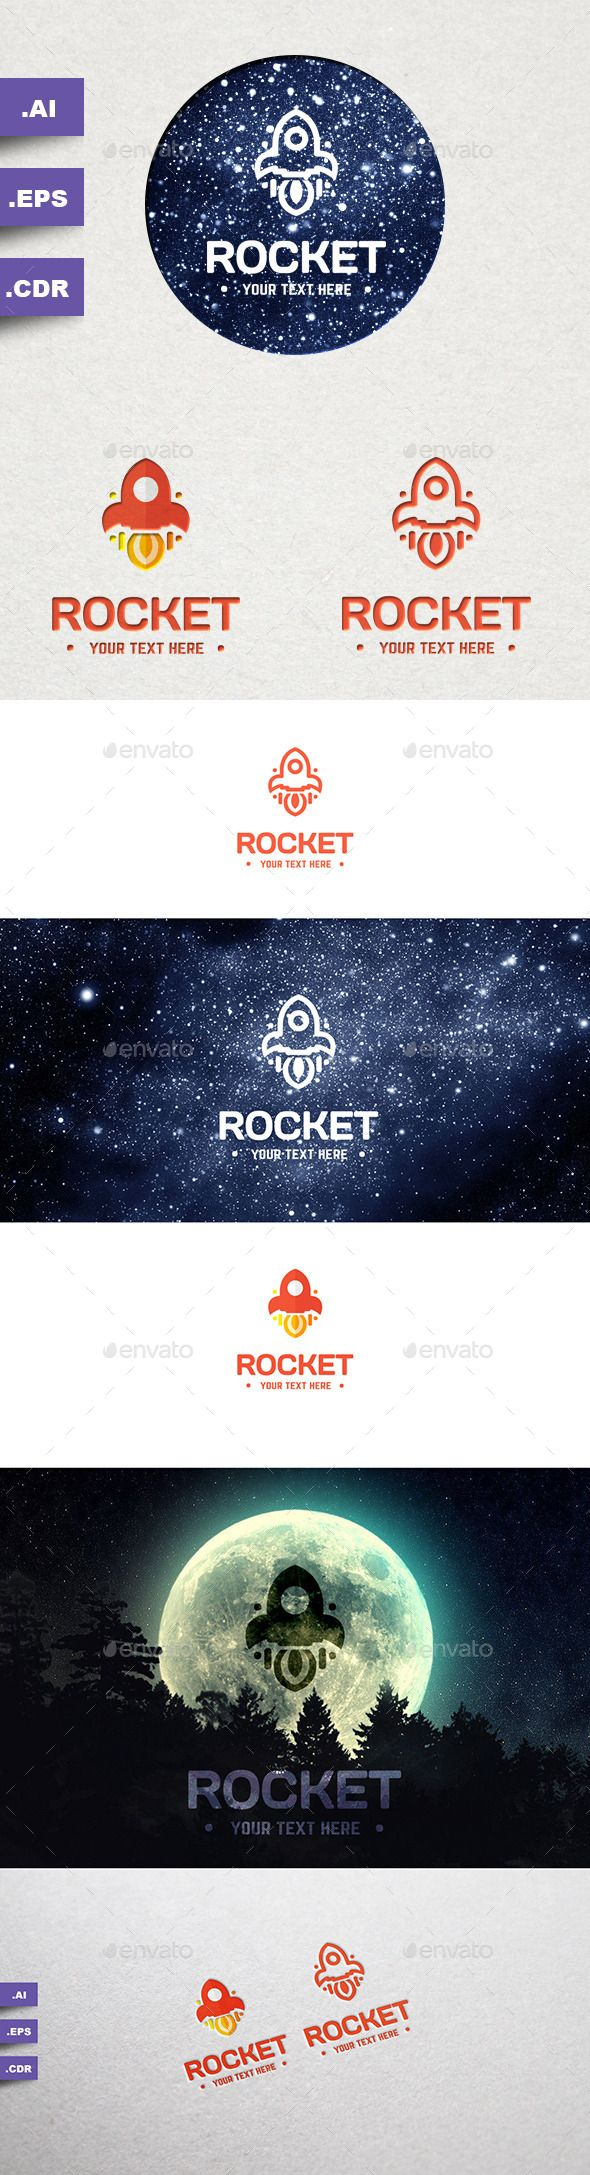 Rocket Logo — Vector EPS #space #spaceship • Available here → https://graphicriver.net/item/rocket-logo/9919227?ref=pxcr